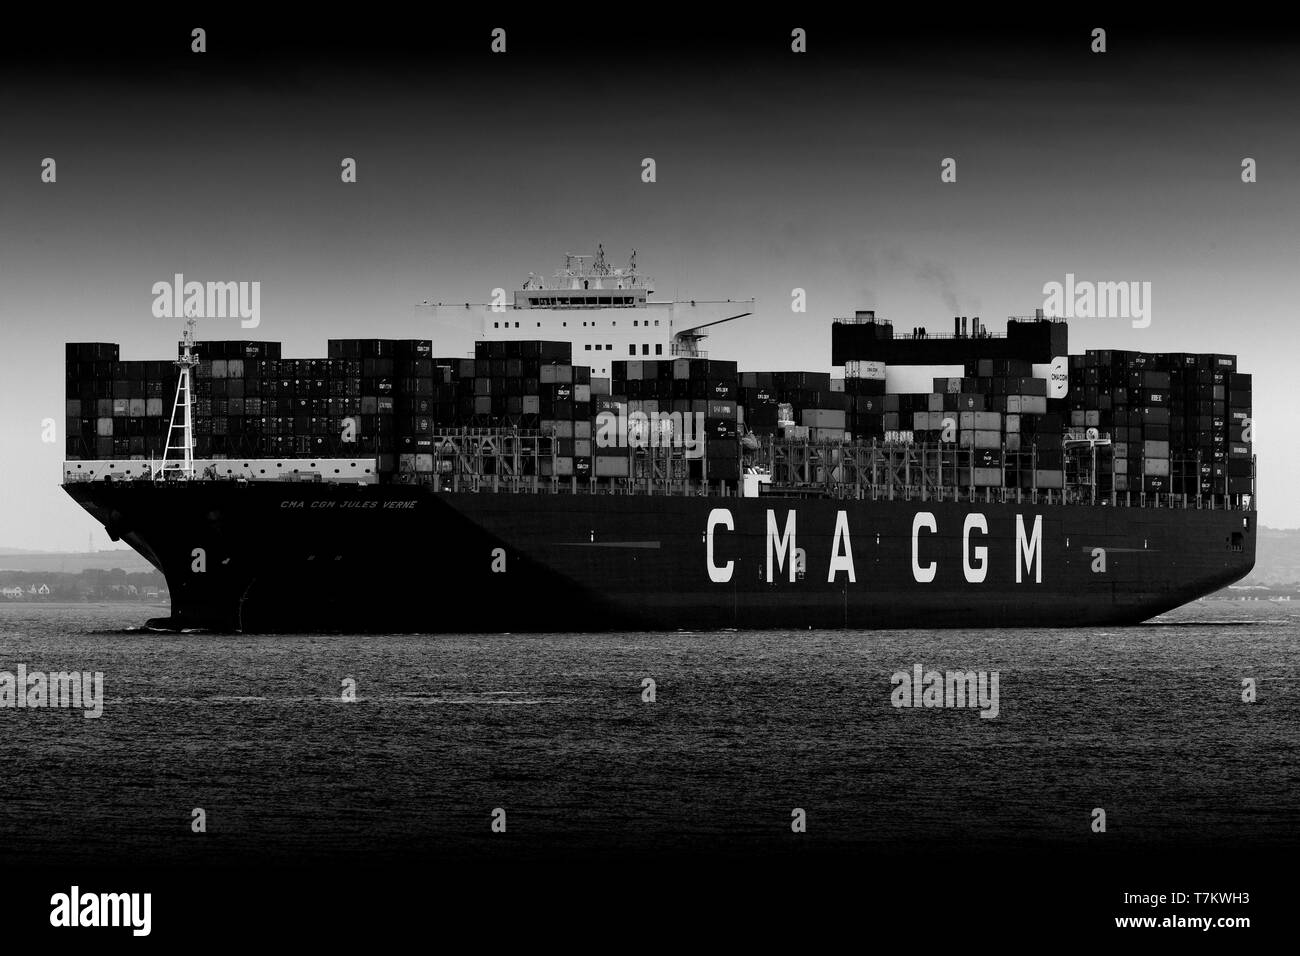 CMA CGM, container,ship, Jules Vern, entering,Southampton,water,The Solent, off, Cowes, Isle of Wight, England,UK, - Stock Image